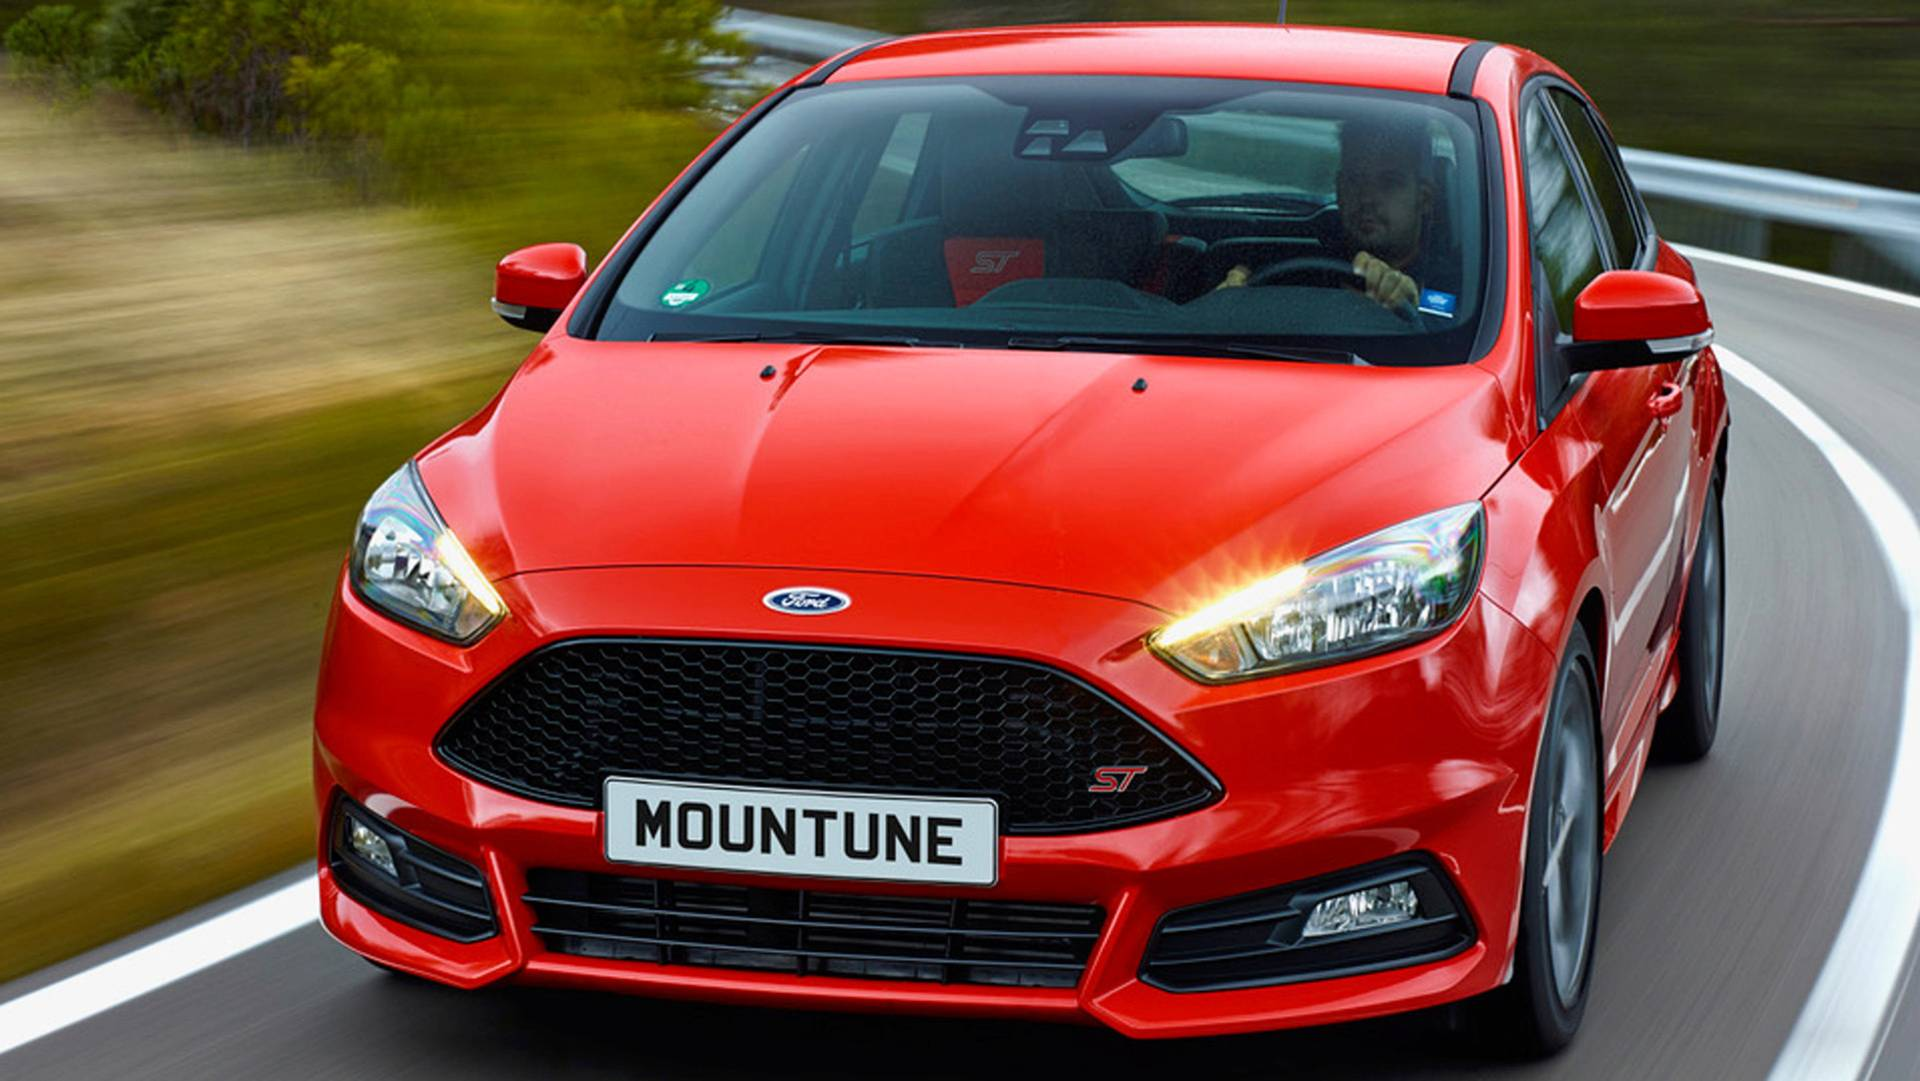 New Mountune Upgrades Add 20 Horsepower To Diesel Ford Focus St